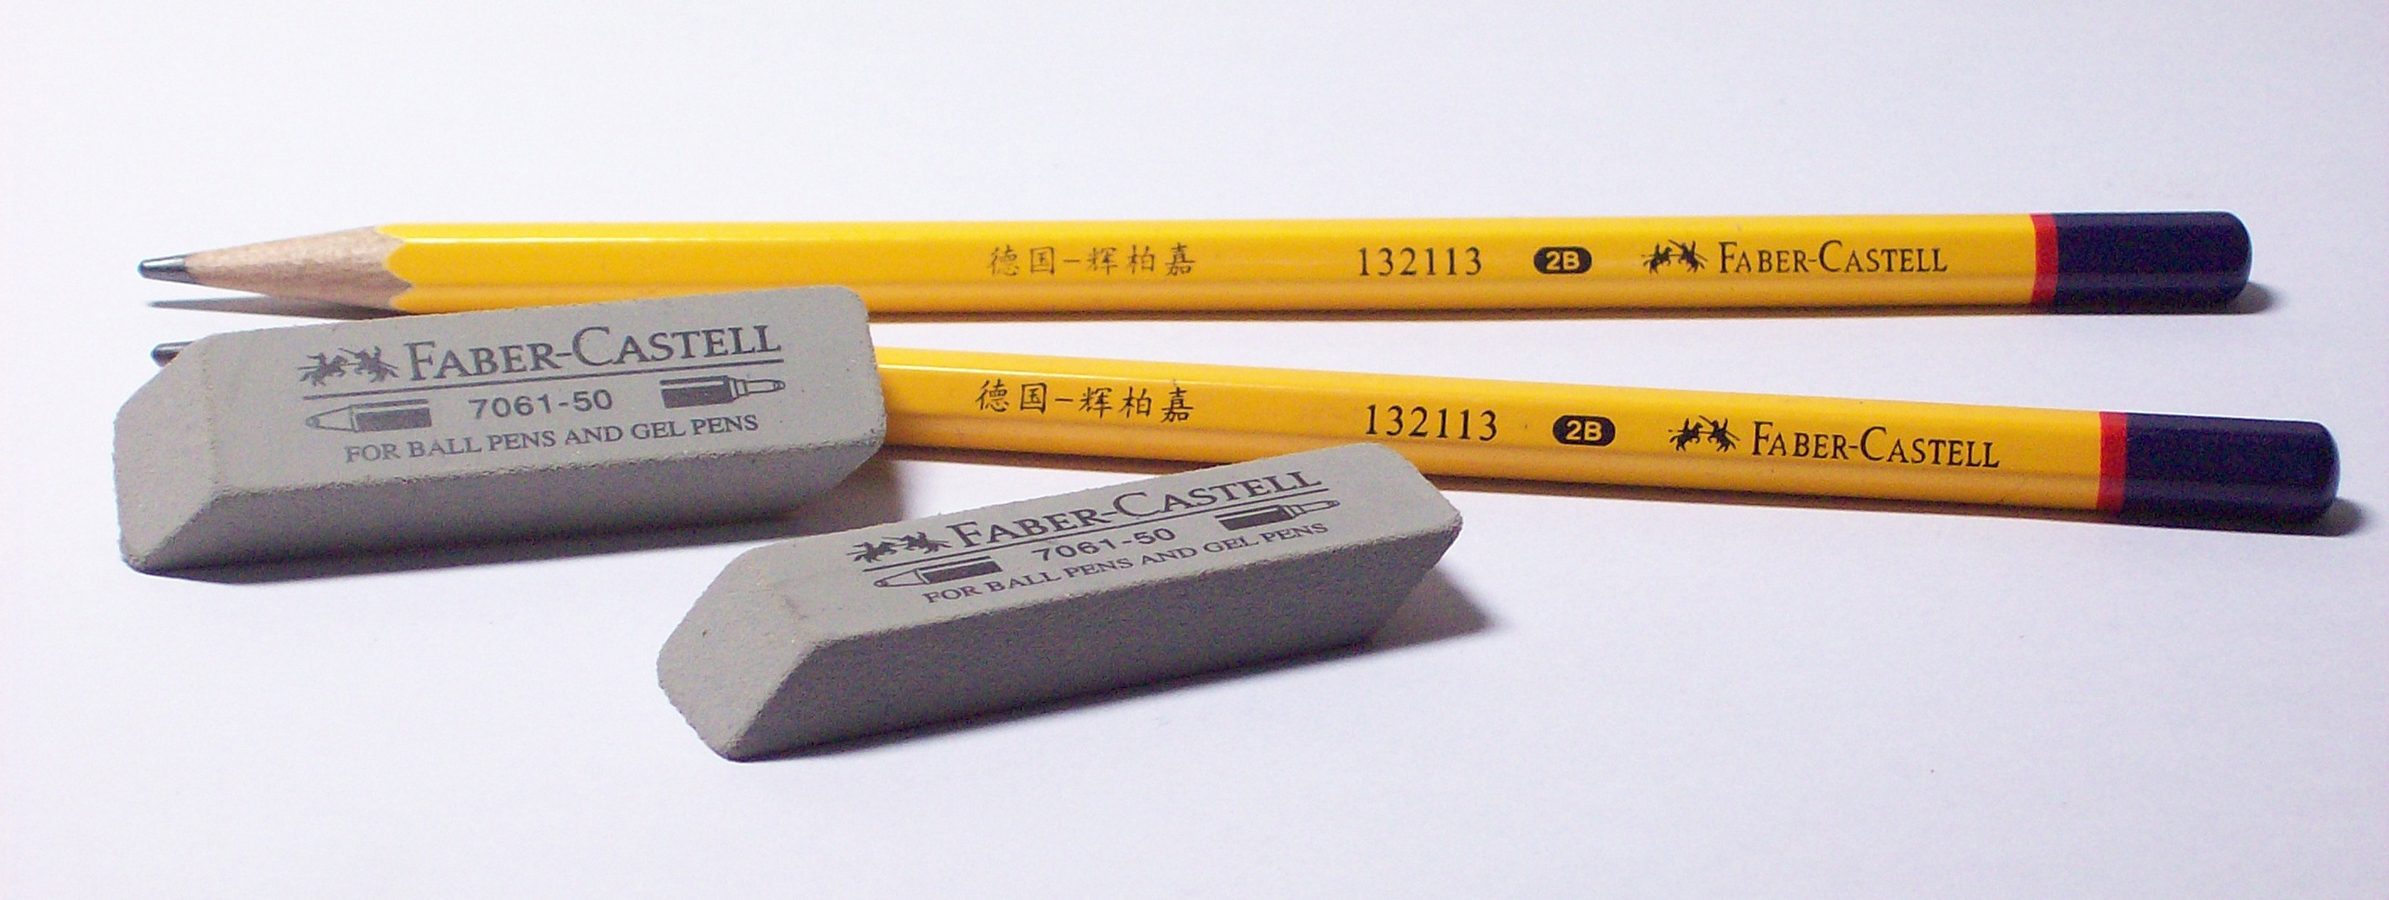 pencils and erasers Buy online the official range of cross® refills for cross® pencils available including 05mm, 07mm & 09mm pencil leads and erasers.